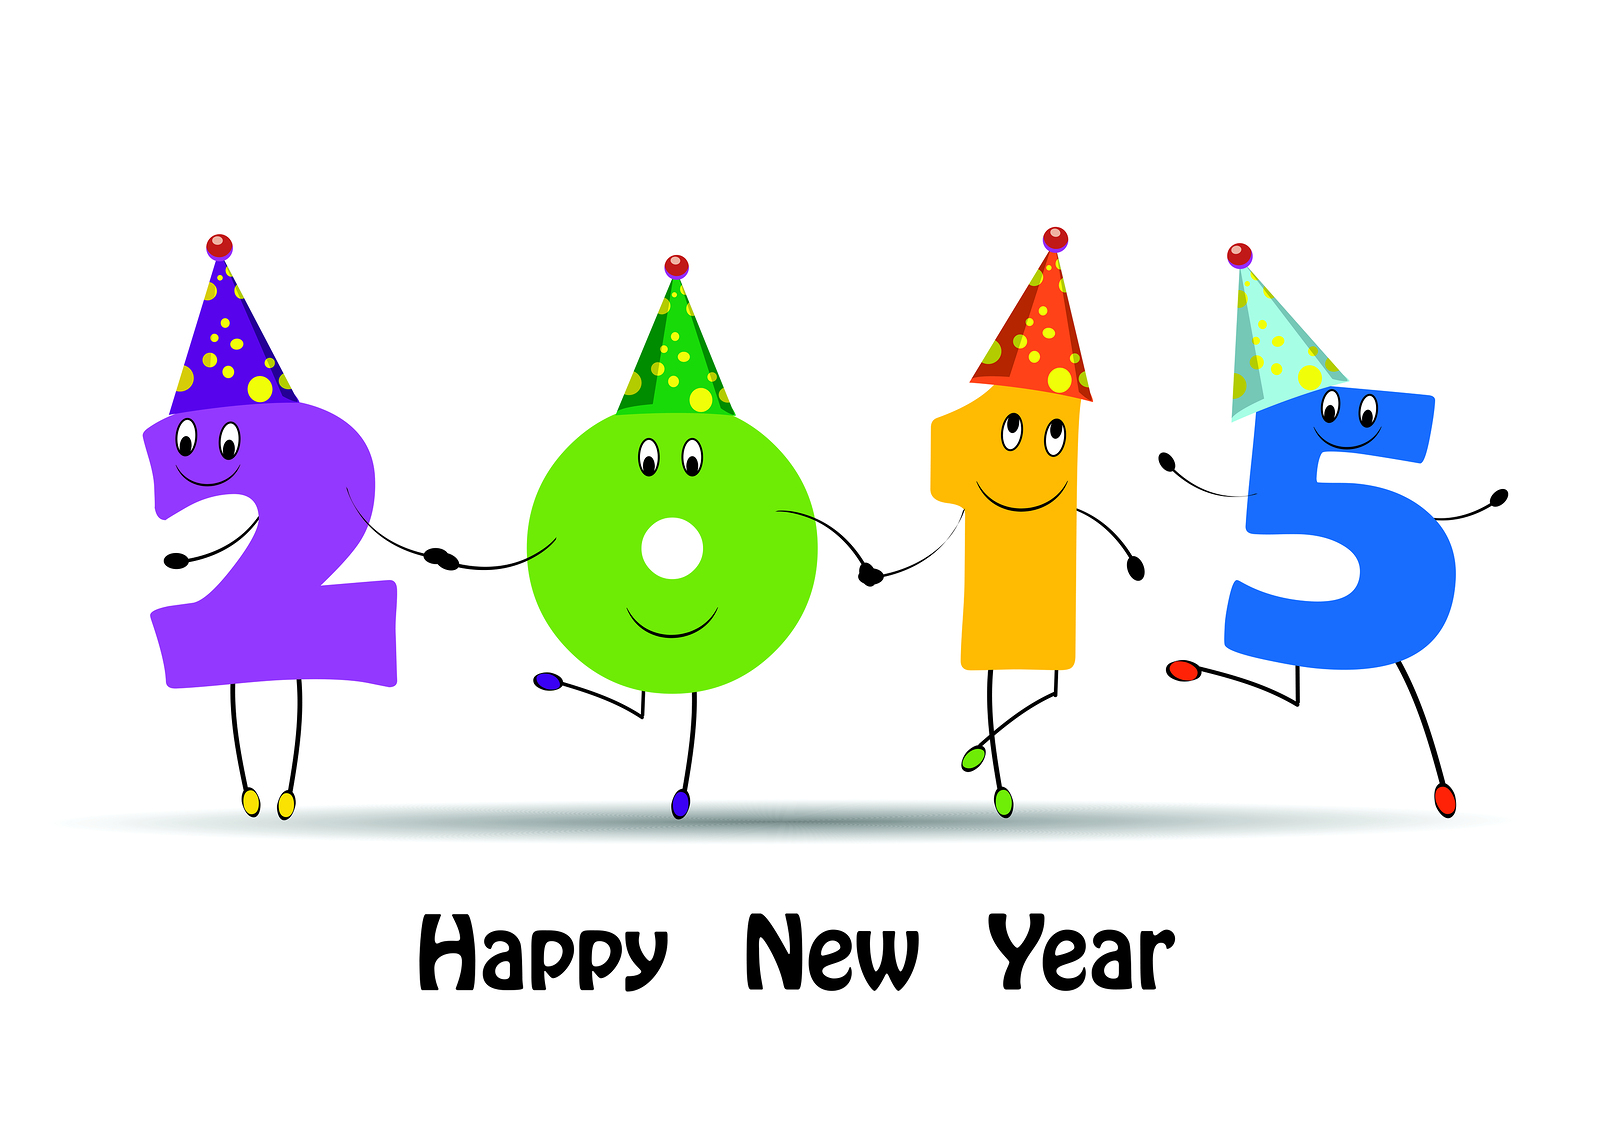 New year greetings wallpaper 2015 wallpapersafari happy new year 2015 greeting cards happy holidays 2015 1600x1131 m4hsunfo